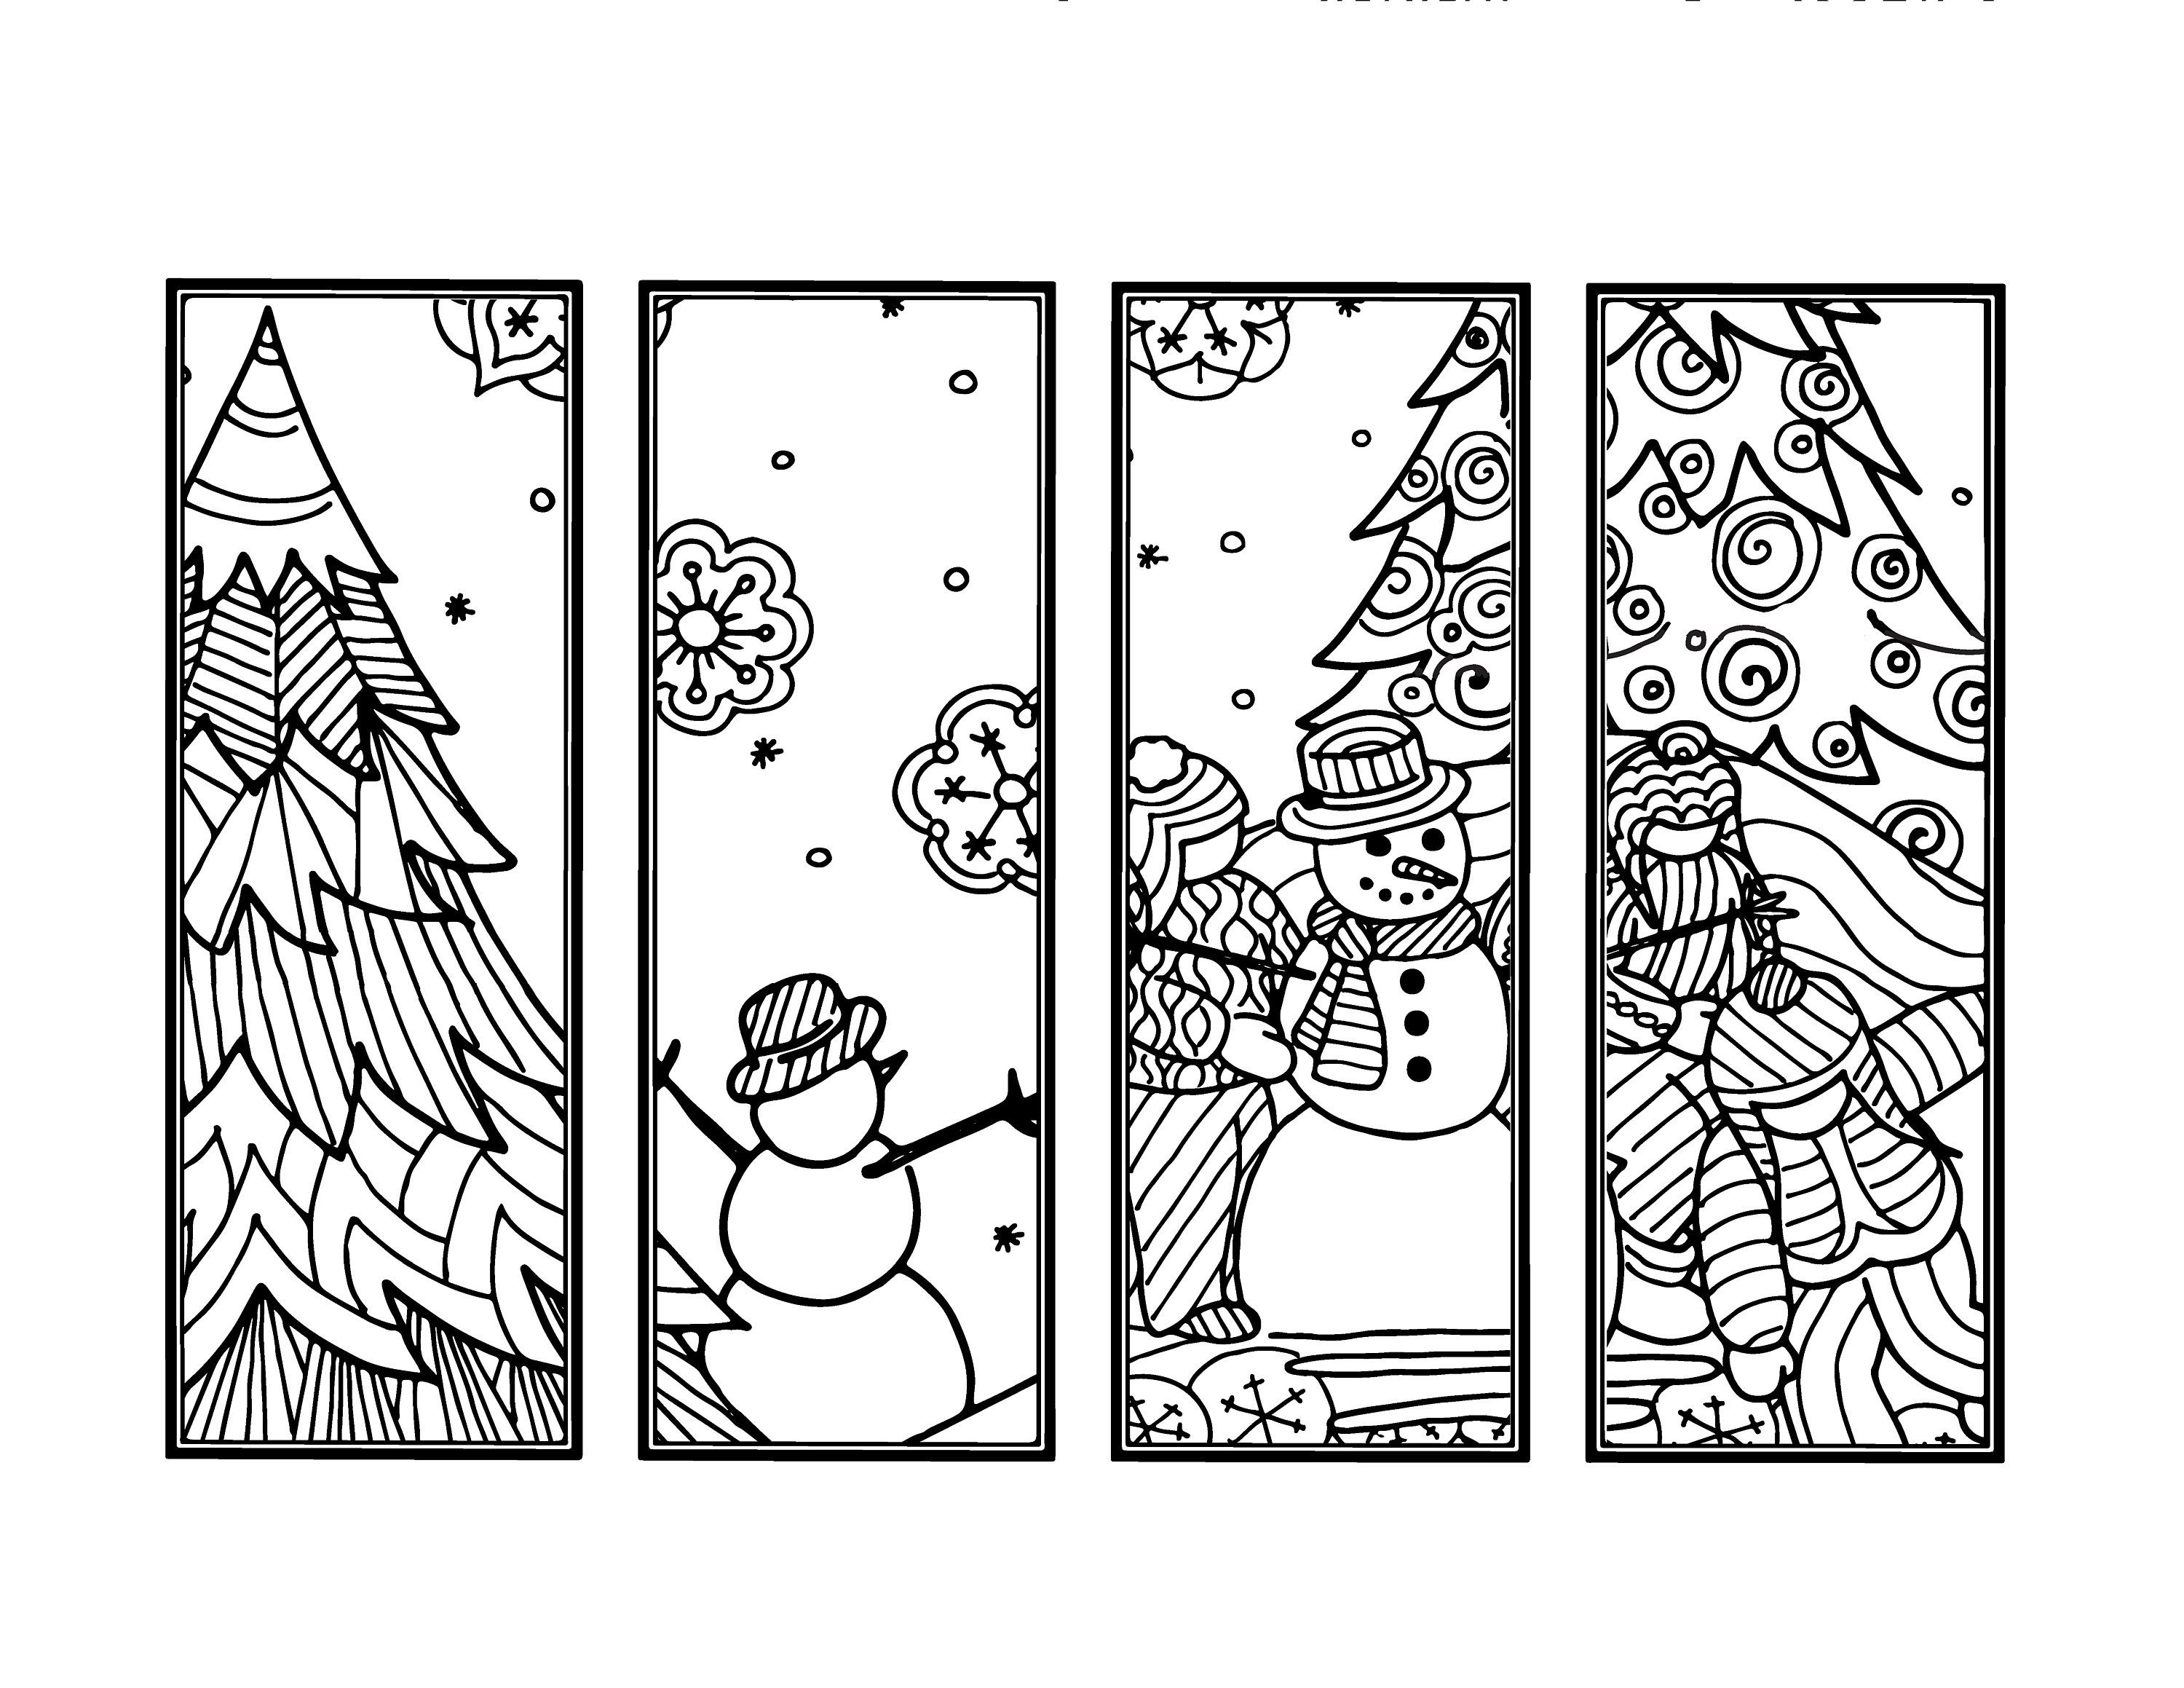 Diy Snowman Bookmarks Set Of 4 Holiday Crafts Winter Etsy Coloring Bookmarks Christmas Coloring Books Christmas Bookmarks